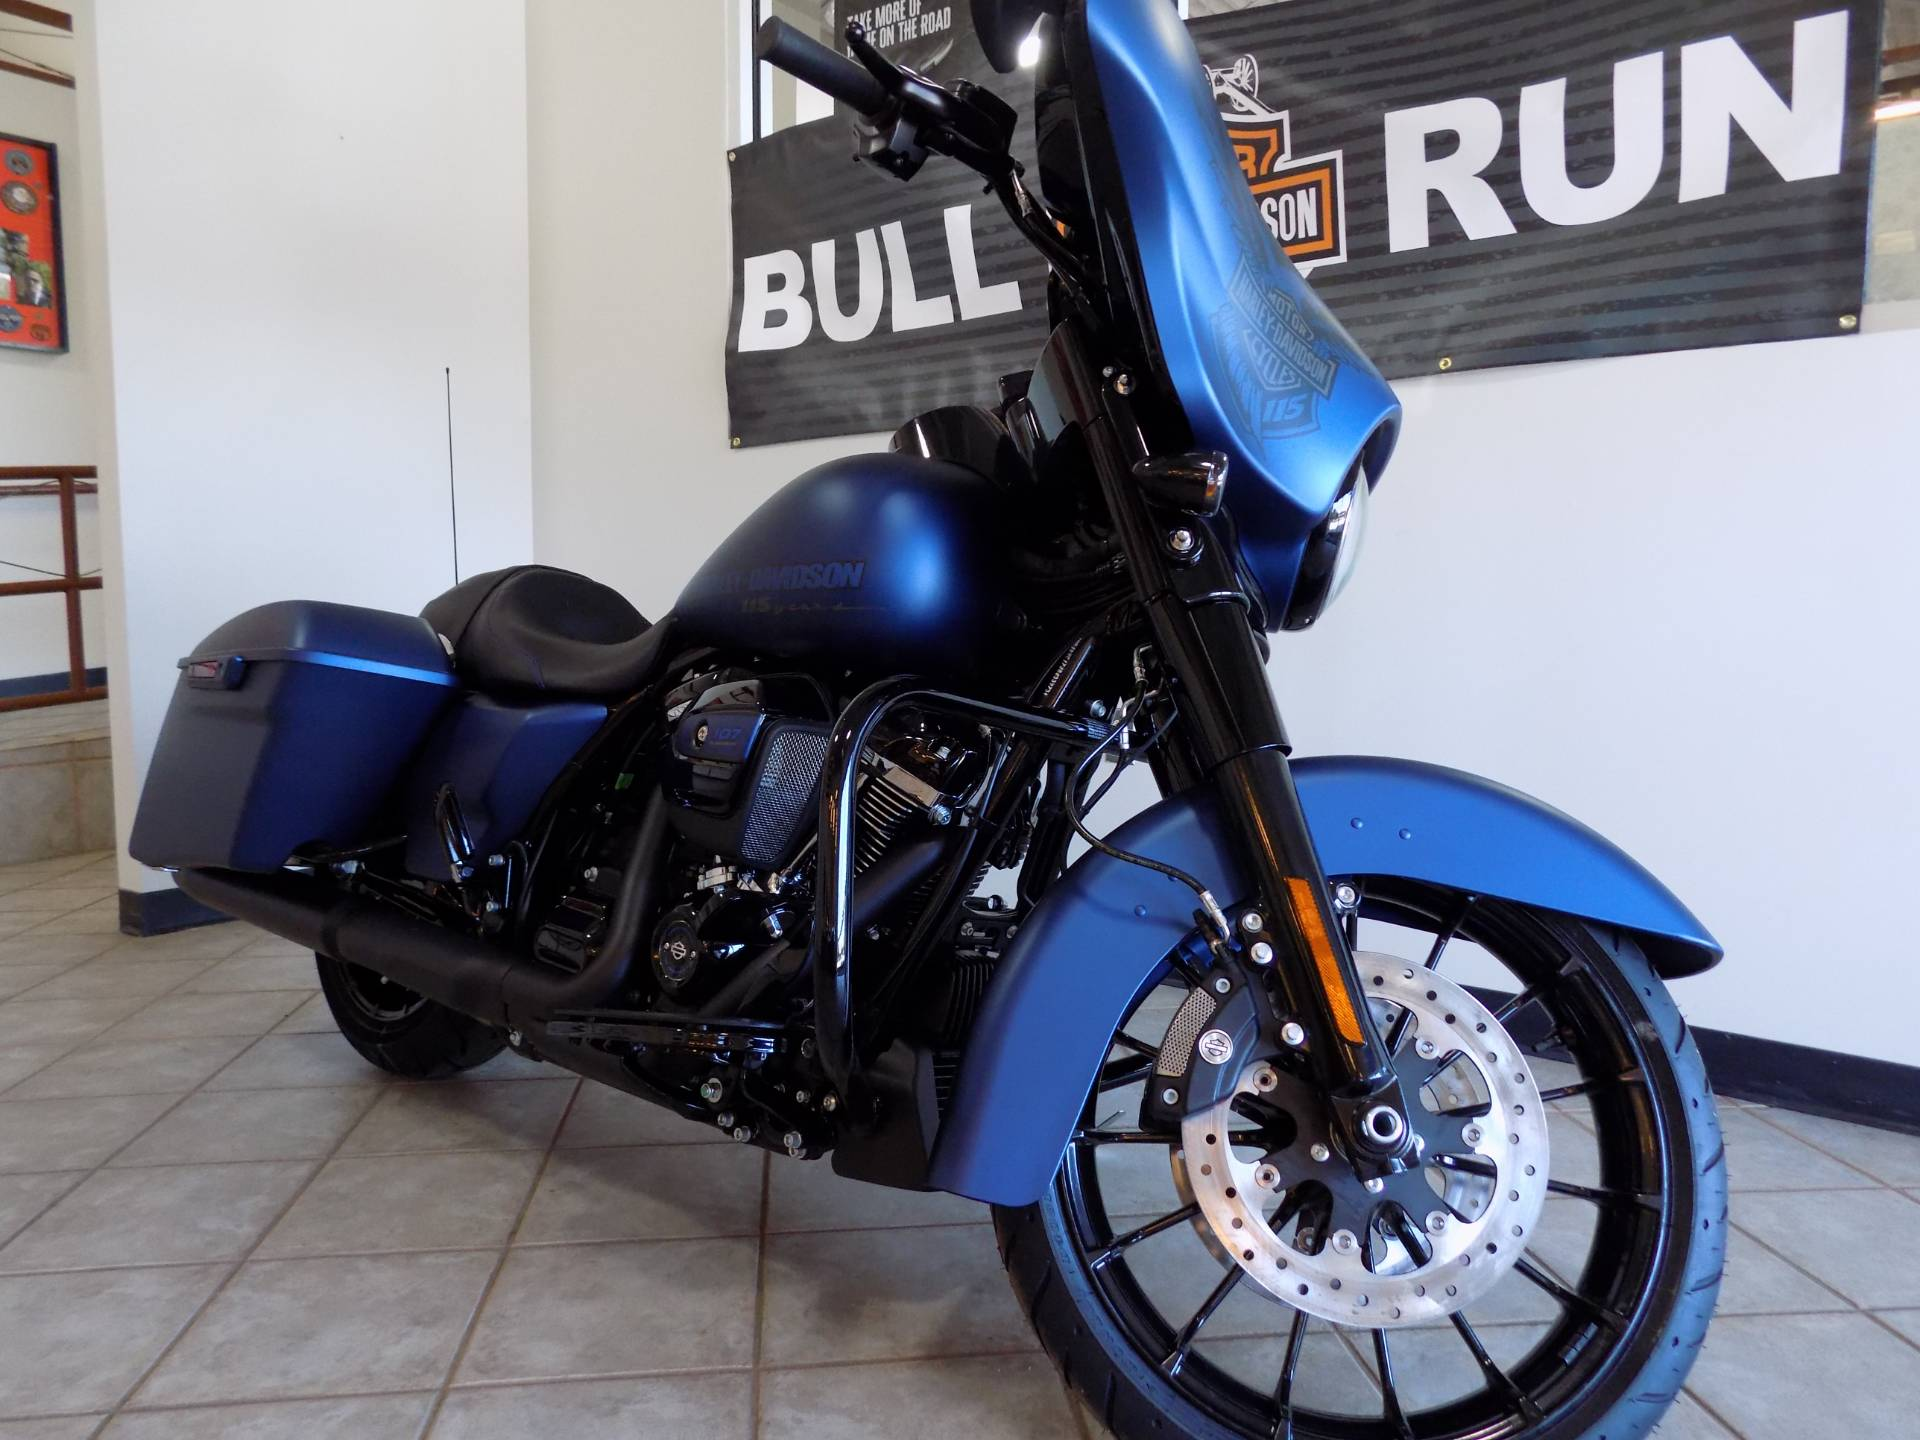 2018 115th Anniversary Street Glide Special